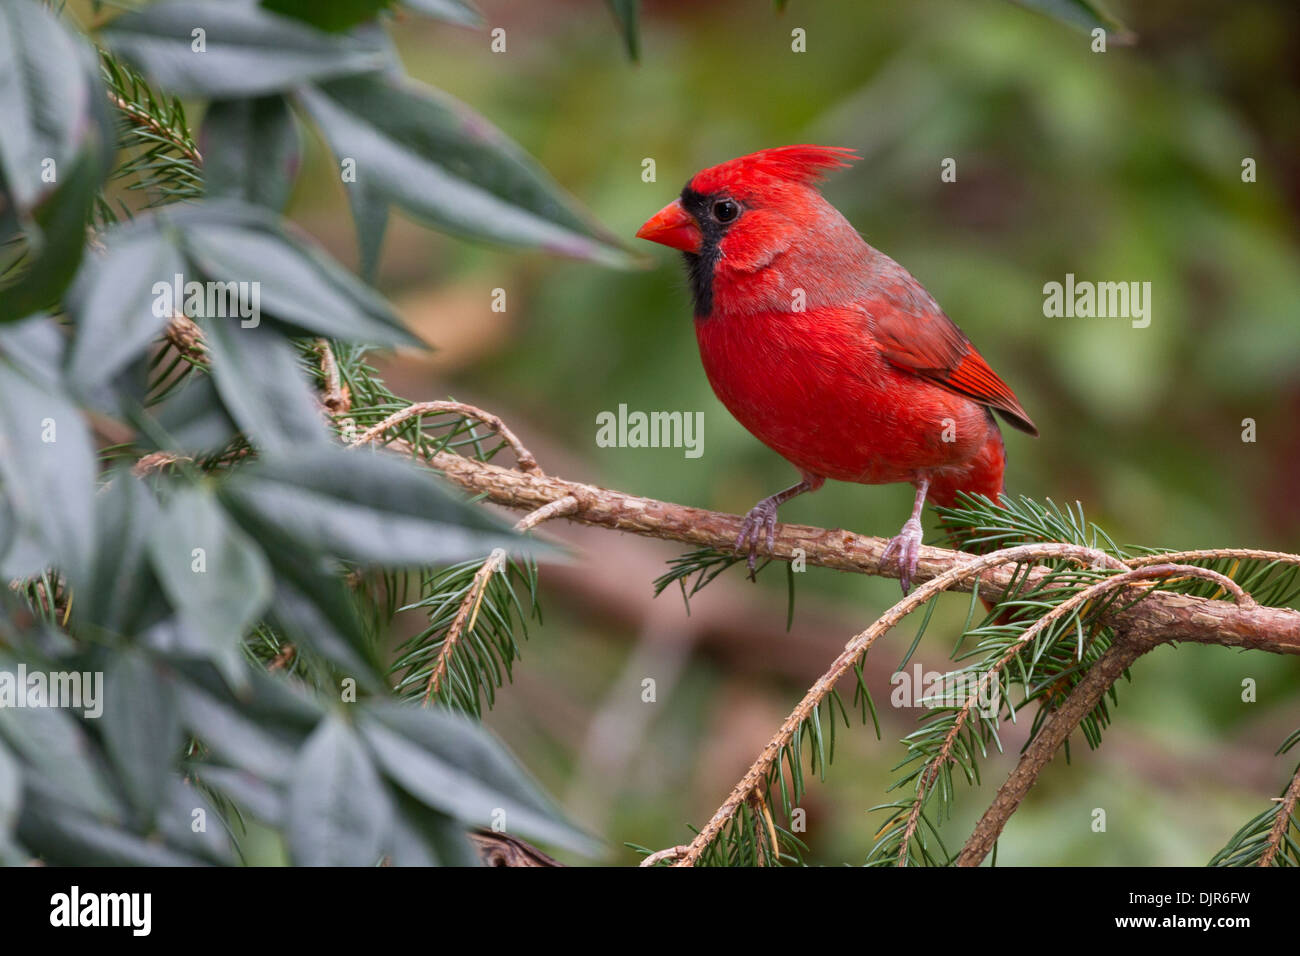 Male Northern Cardinal, Cardinalis cardinalis, in autumn - Stock Image